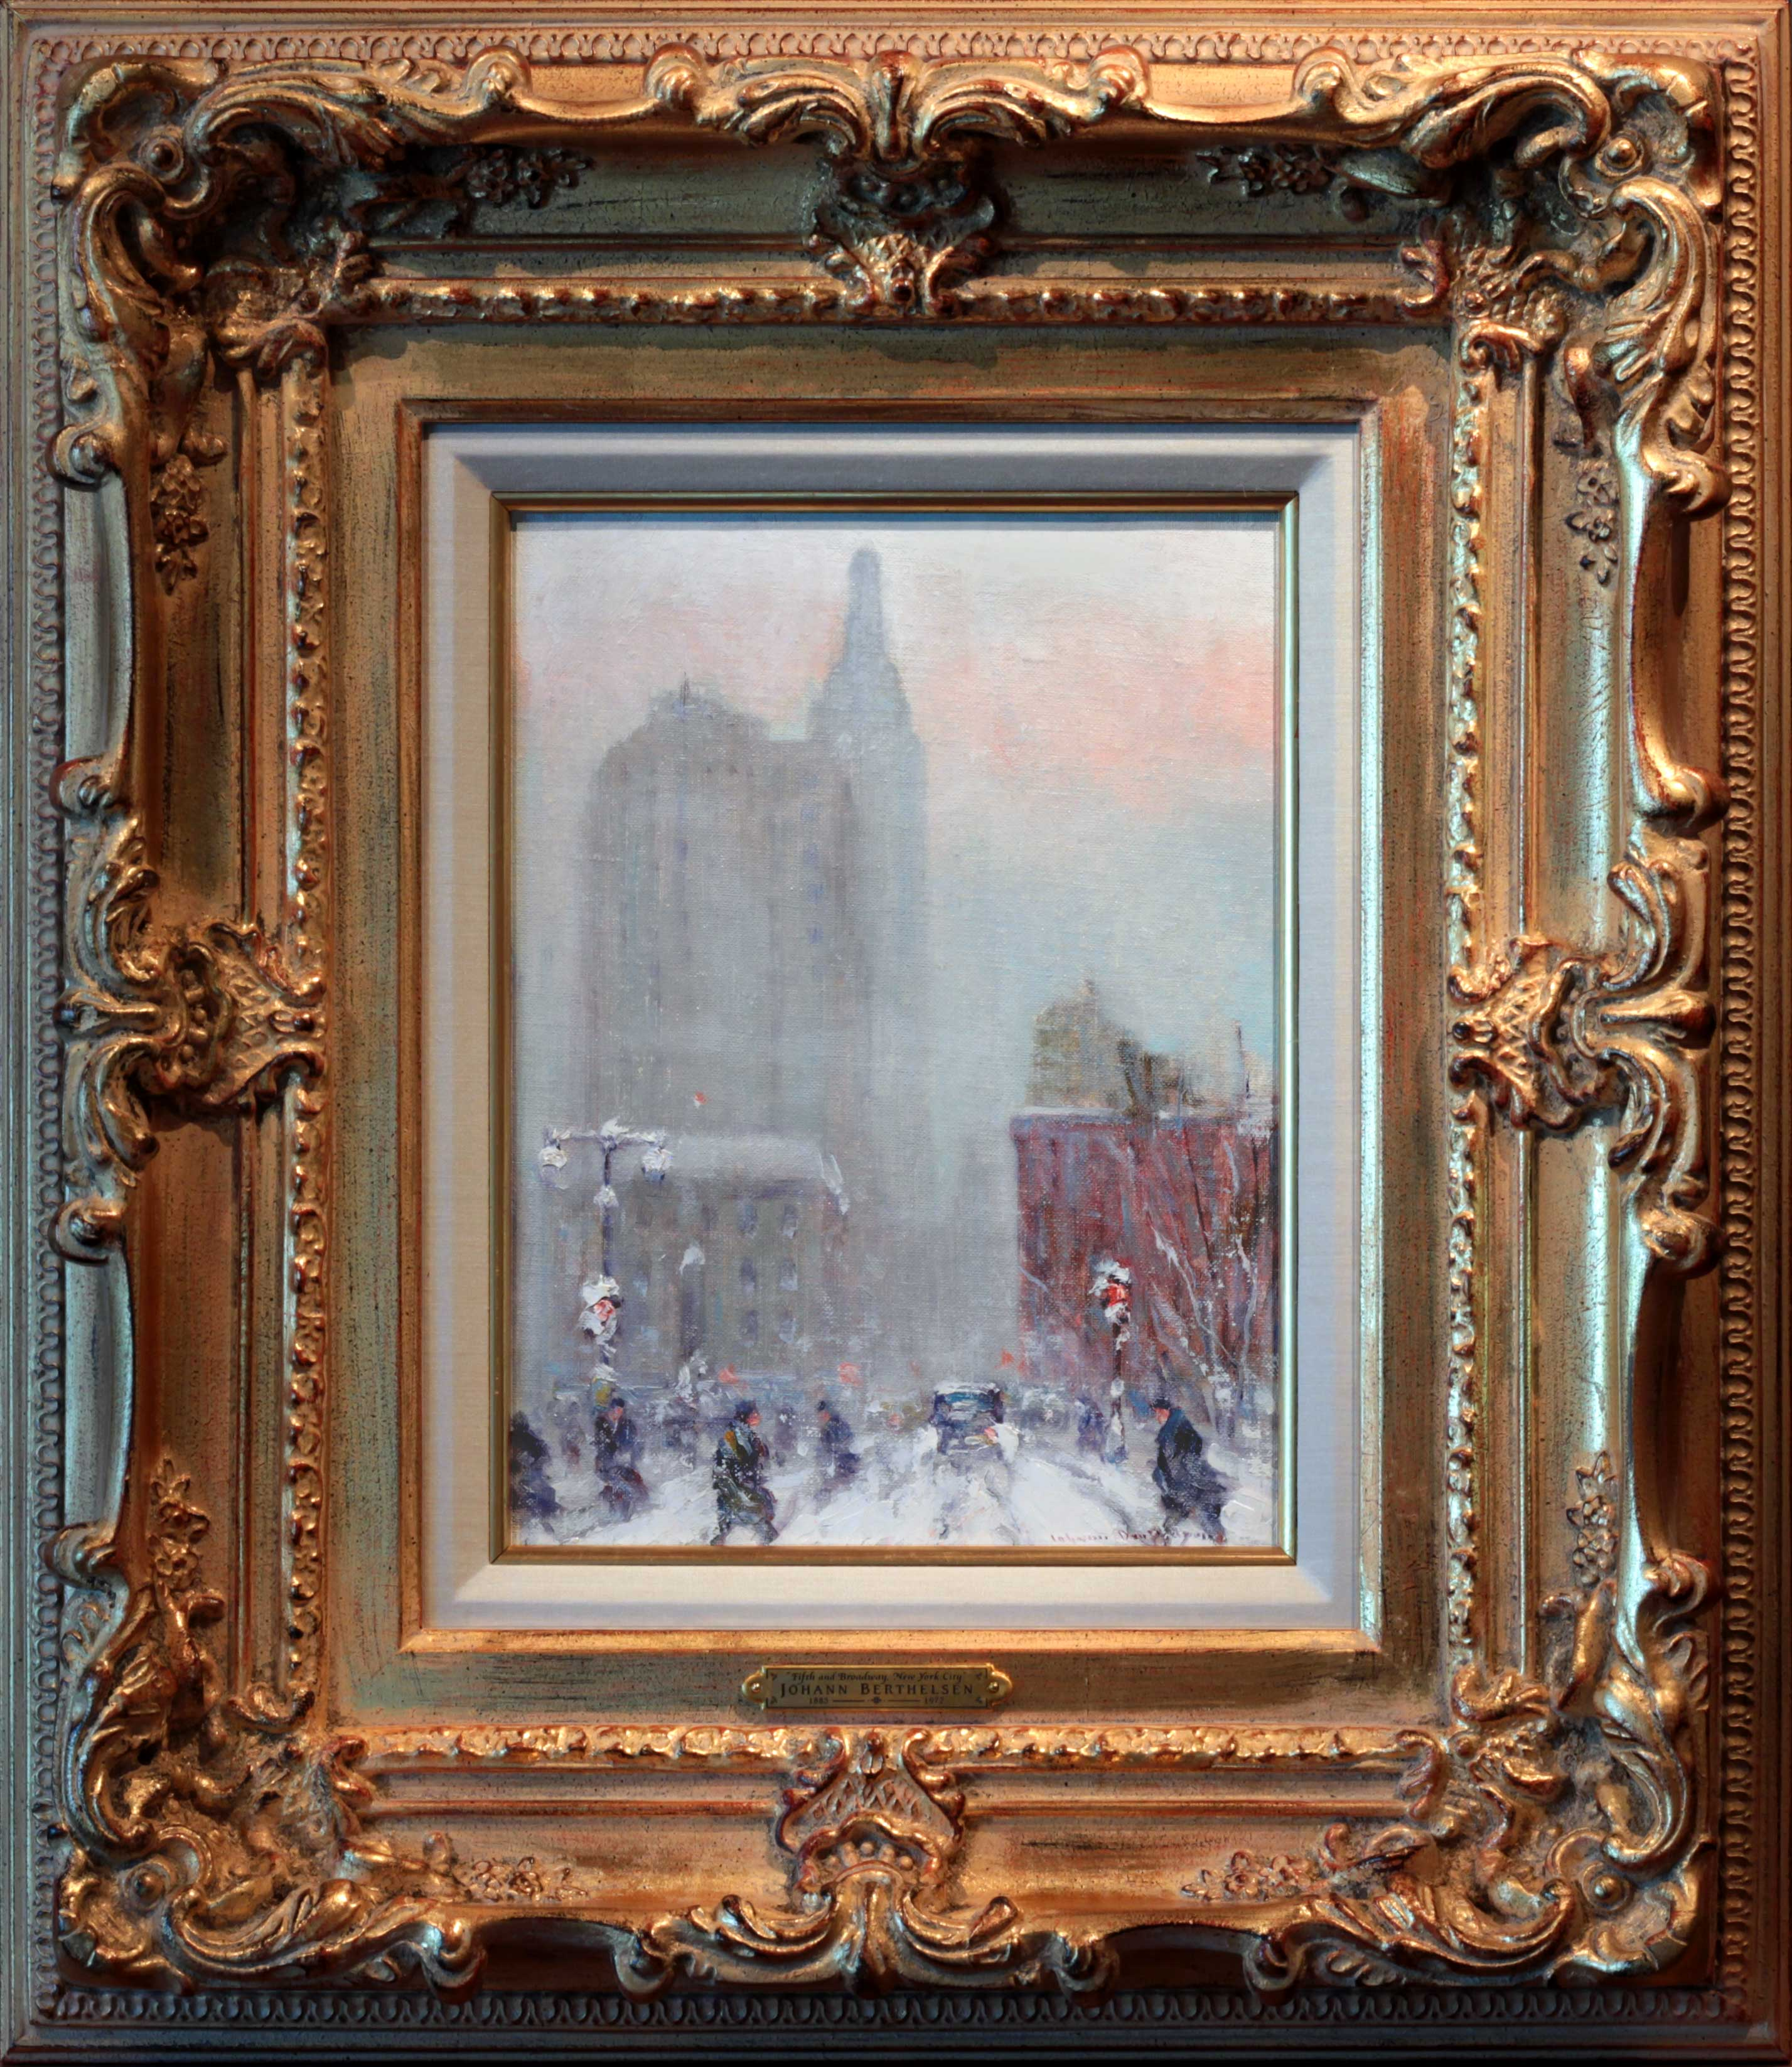 Pocock Fine Art & Antiques - Recent Acquisitions and New Additions